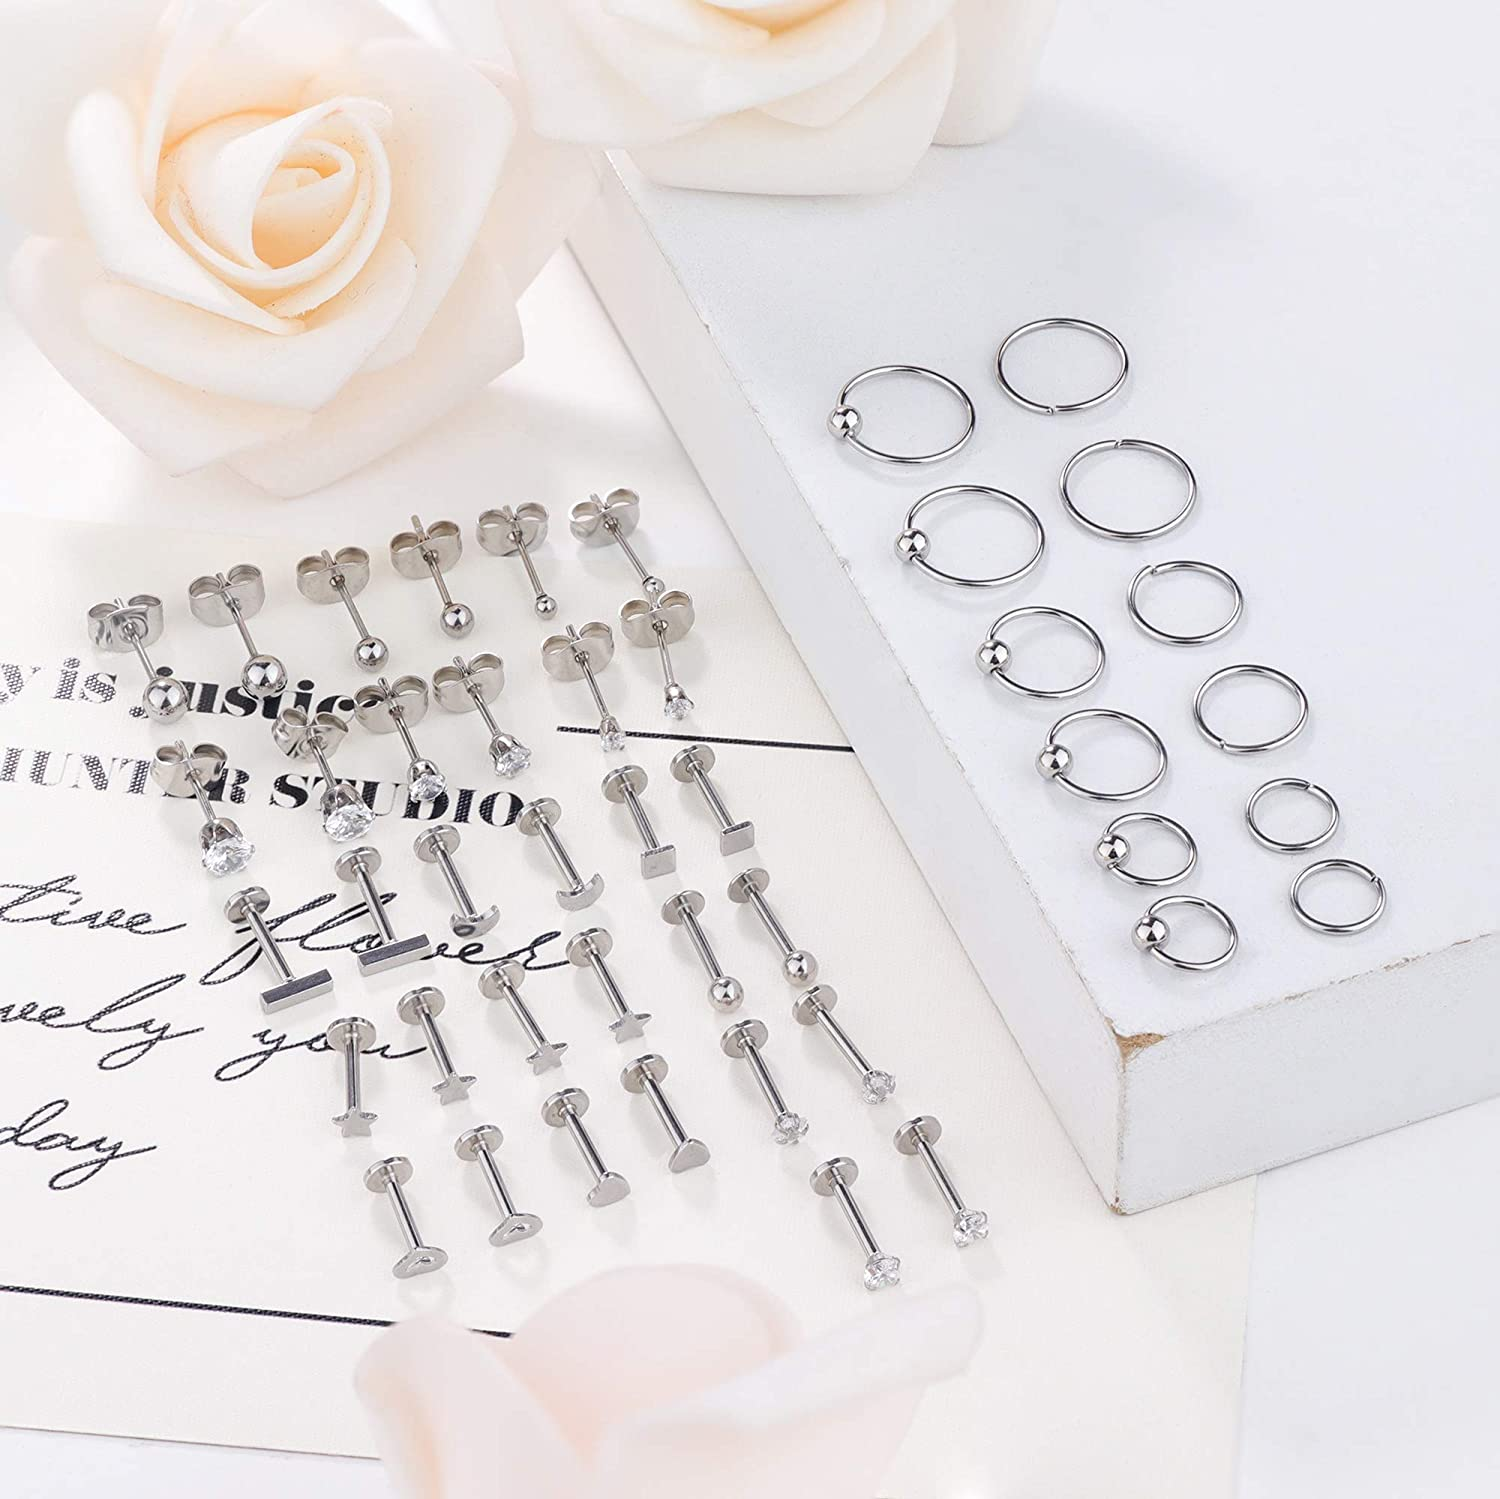 LOYALLOOK 22Pairs Stainless Steel Cartilage Earrings for Men Women Labret Monroe Lip Ring Studs Tiny Stud Earrings Ball CZ Tragus Helix Piercing Earrings